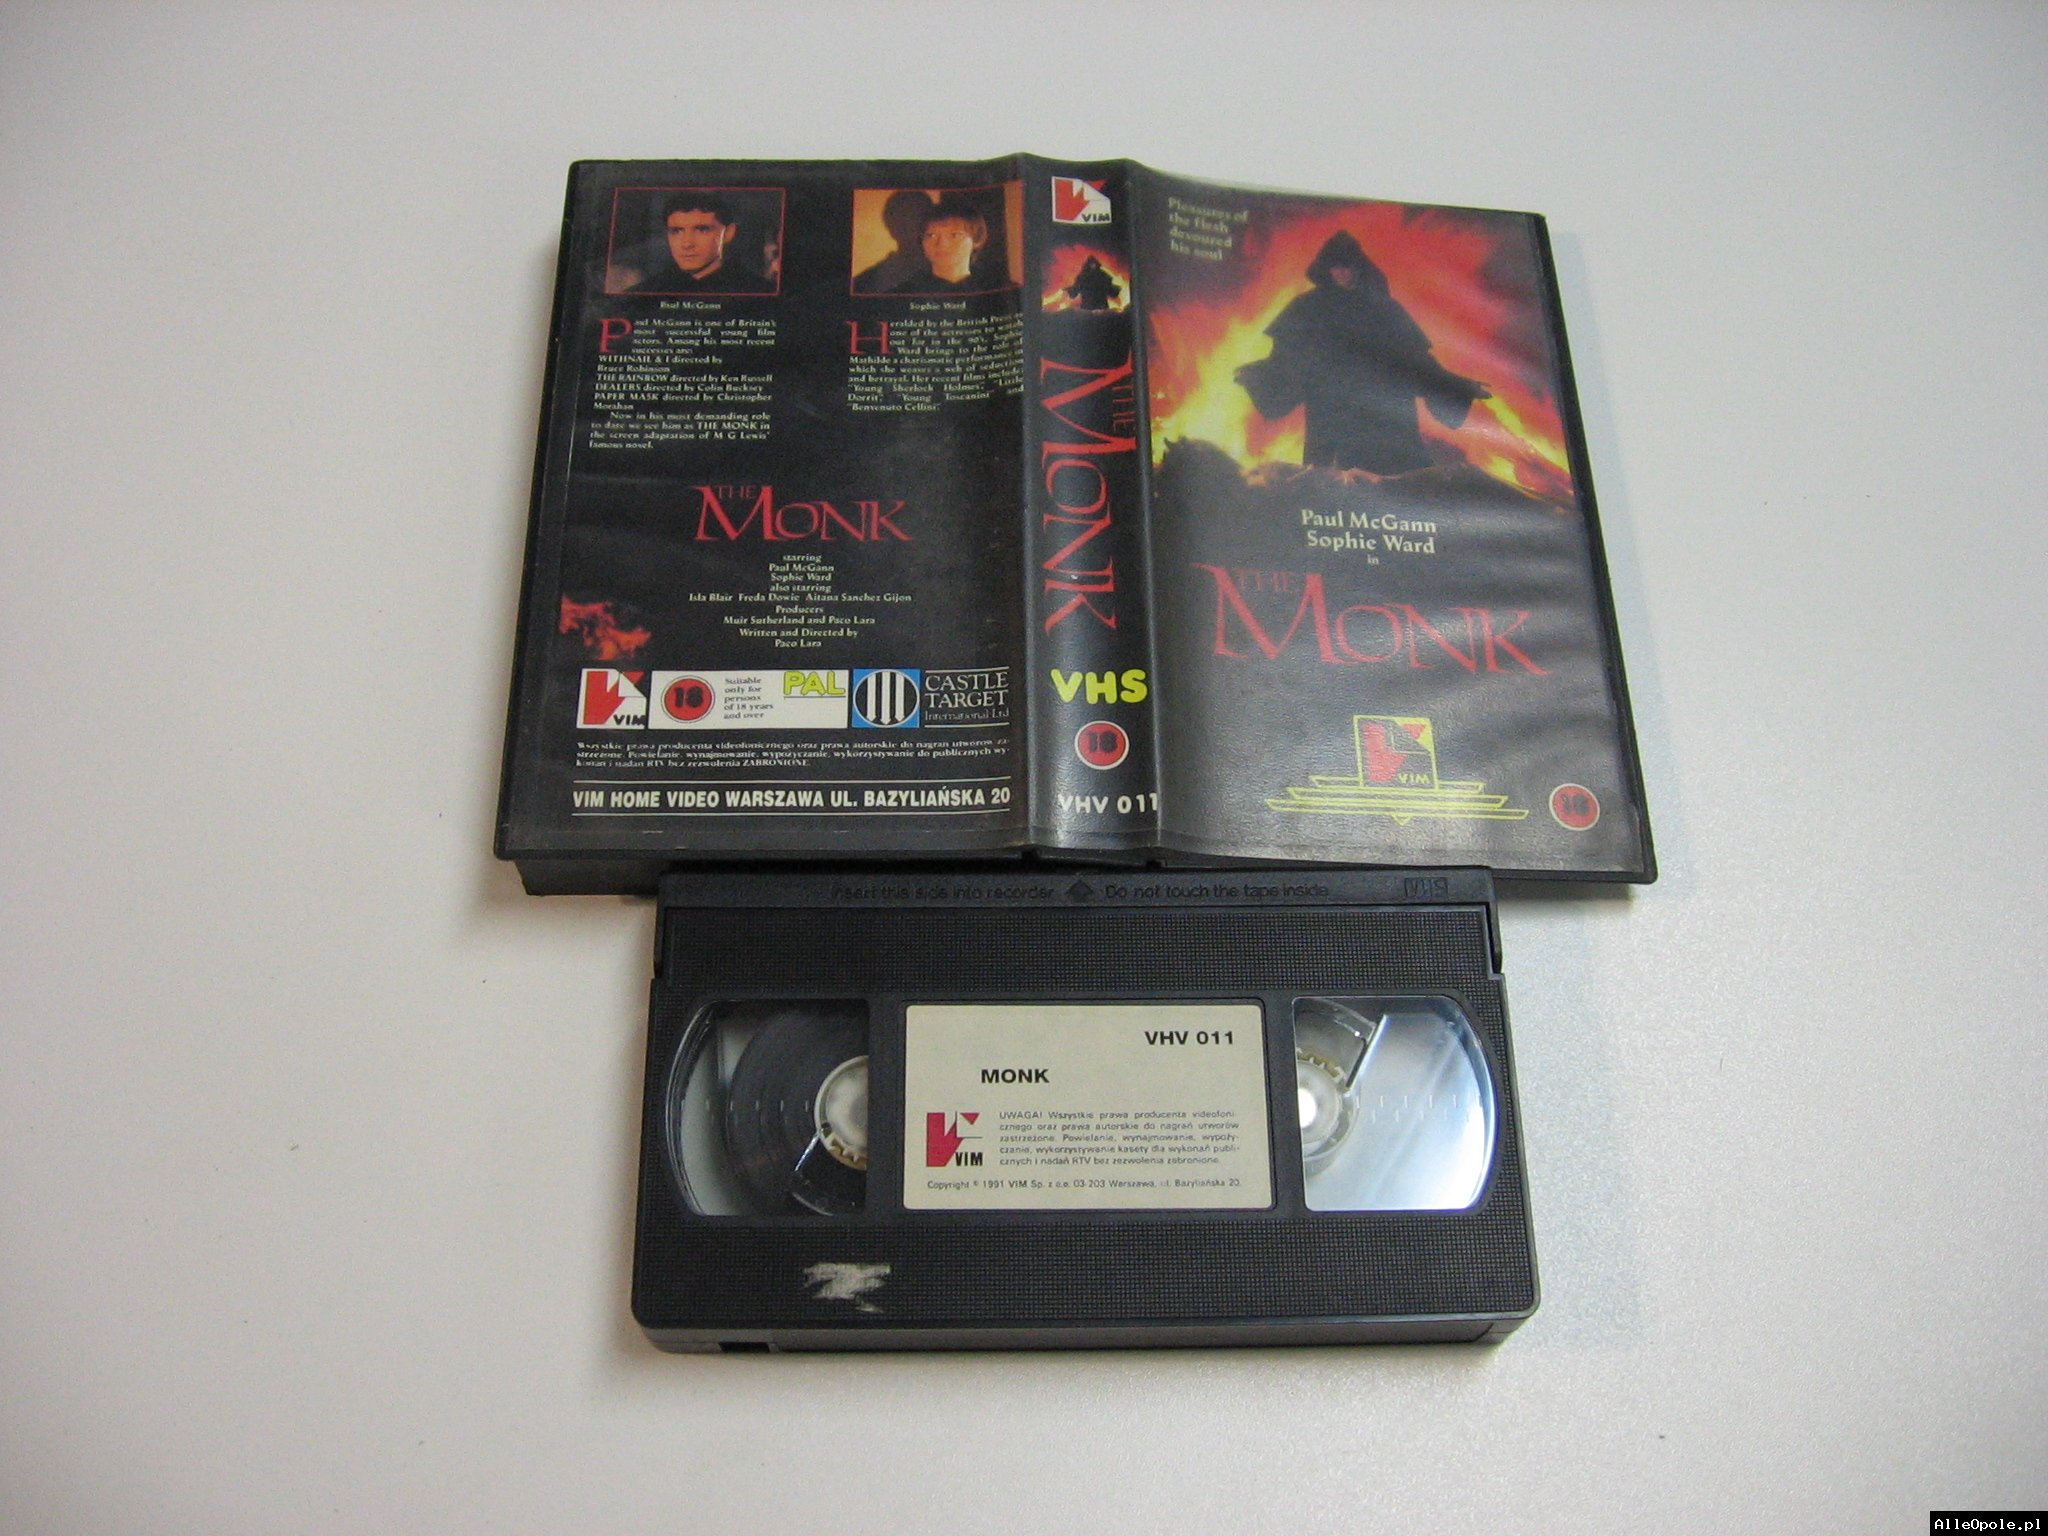 THE MONK - VHS Kaseta Video - Opole 1841